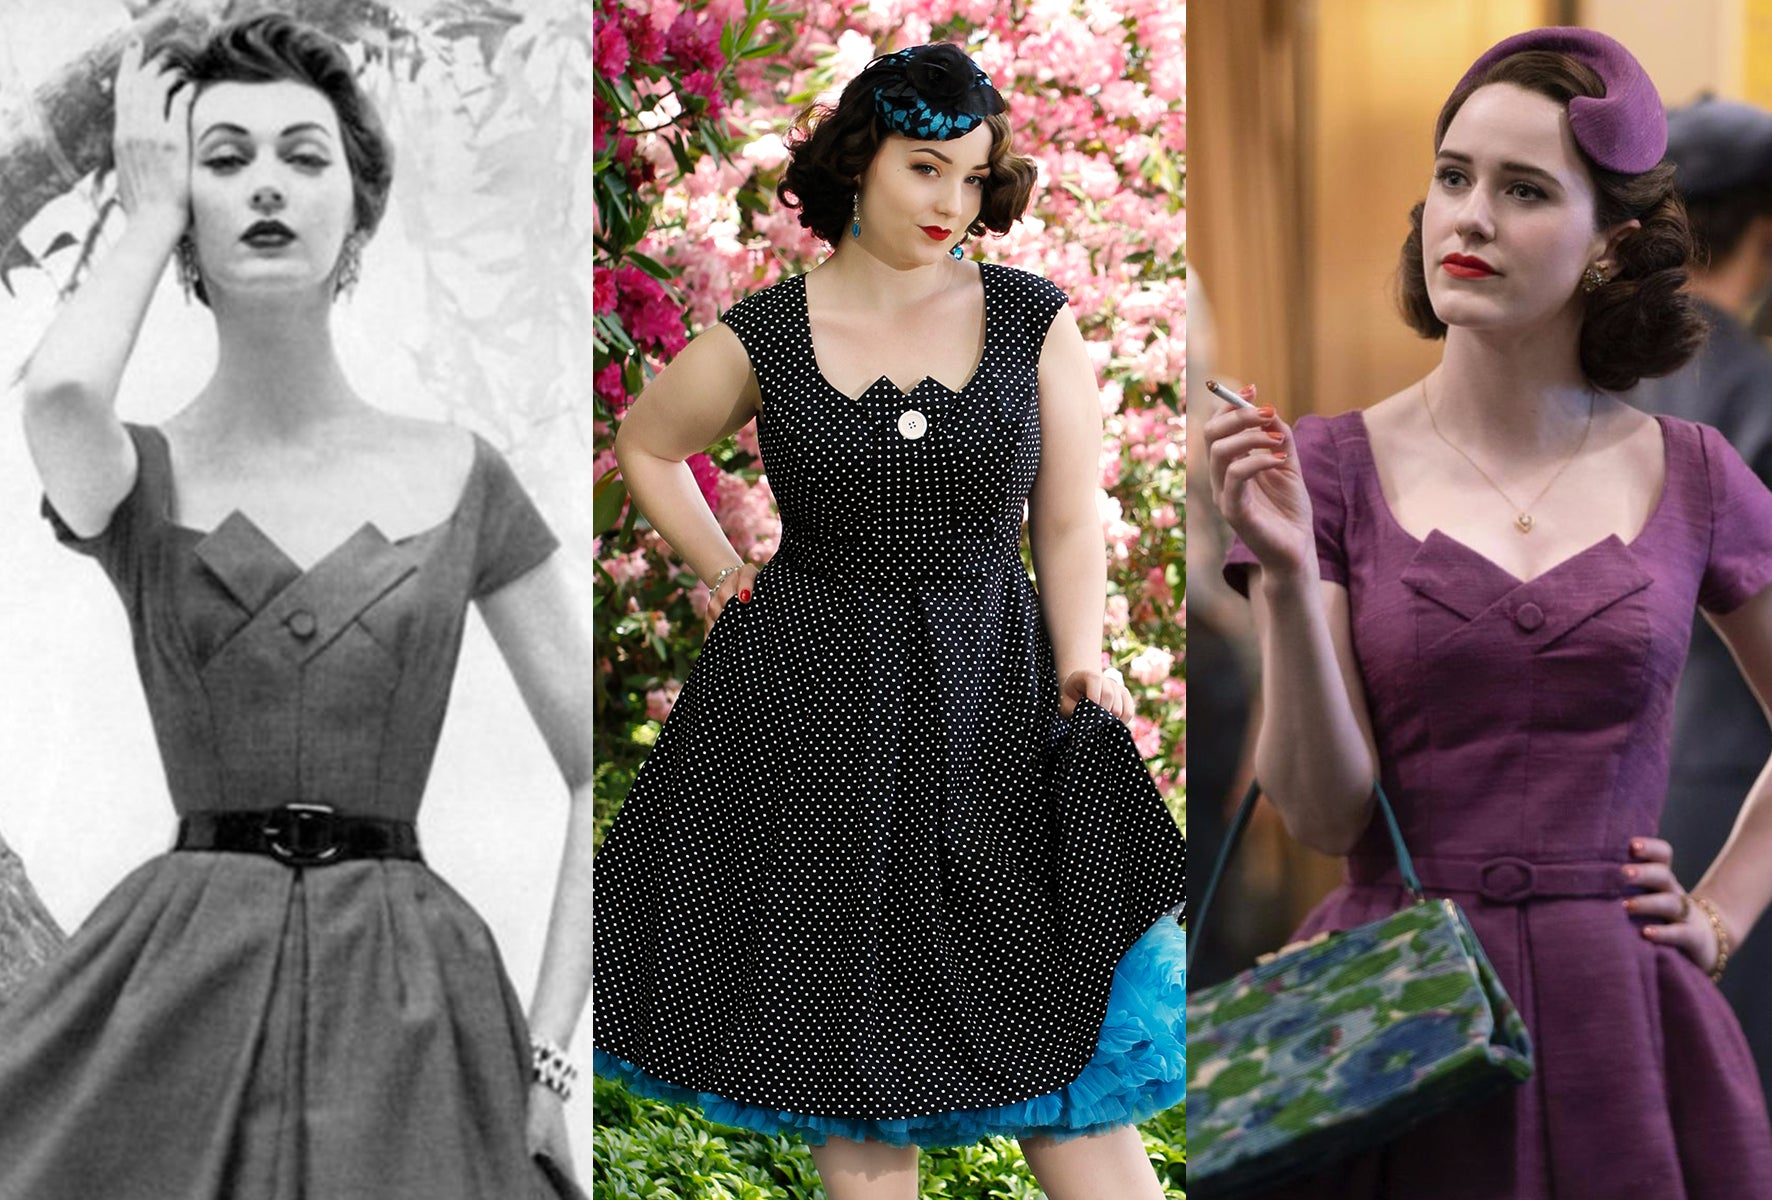 Vintage photograph which inspired the Kate dress by Cherry Velvet beside The Marvelous Mrs Maisel in purple dress